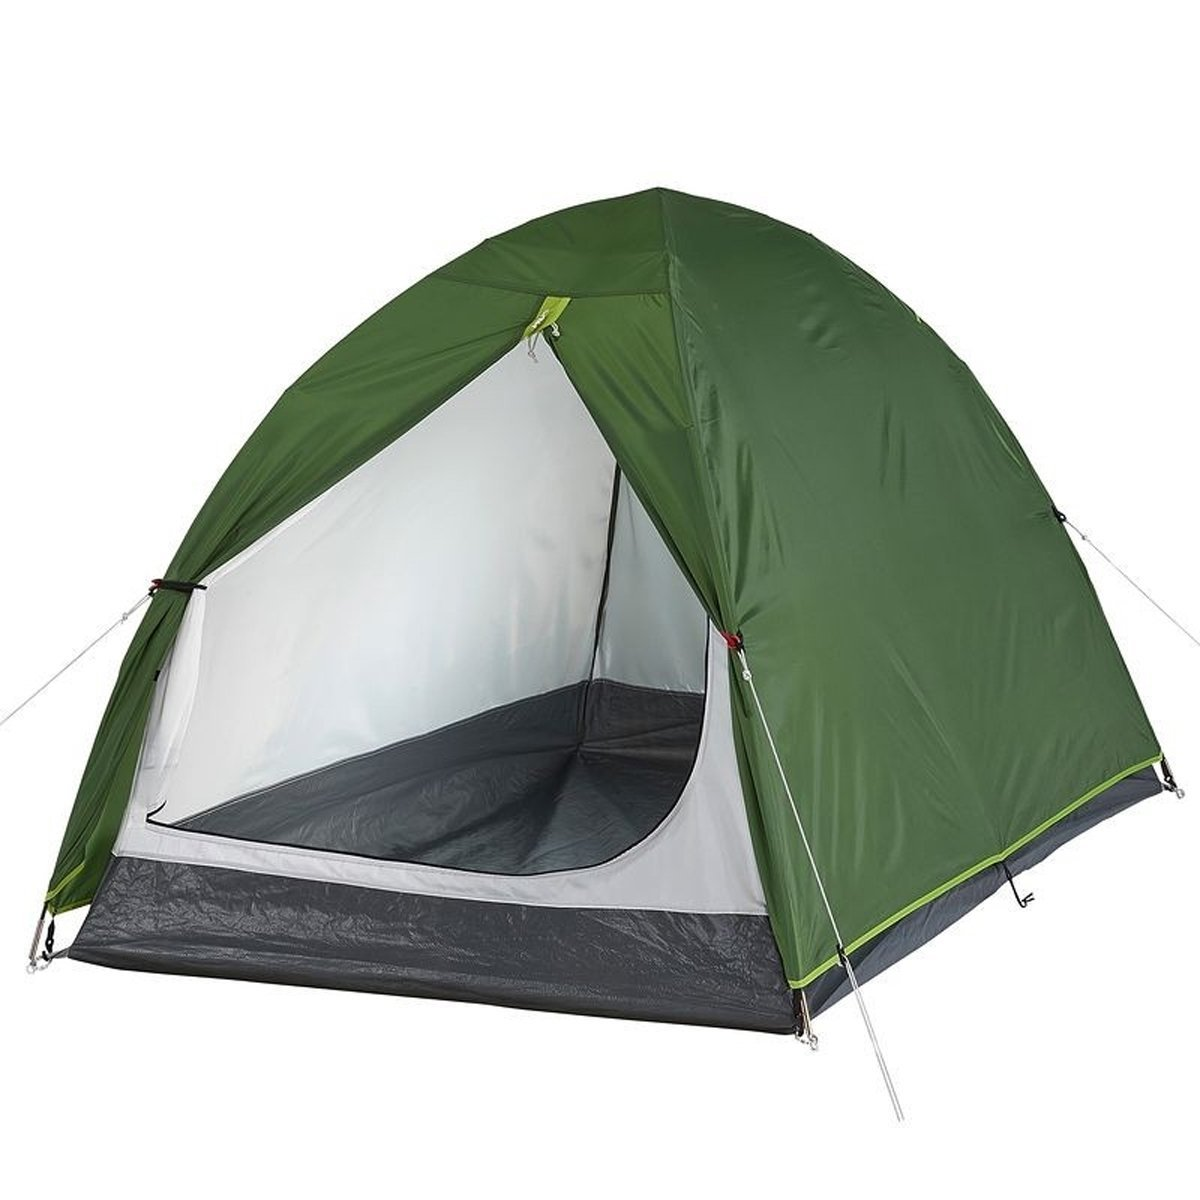 For 2579/-(43% Off) Quechua Arpenaz 2 Tent (Green) at Amazon India